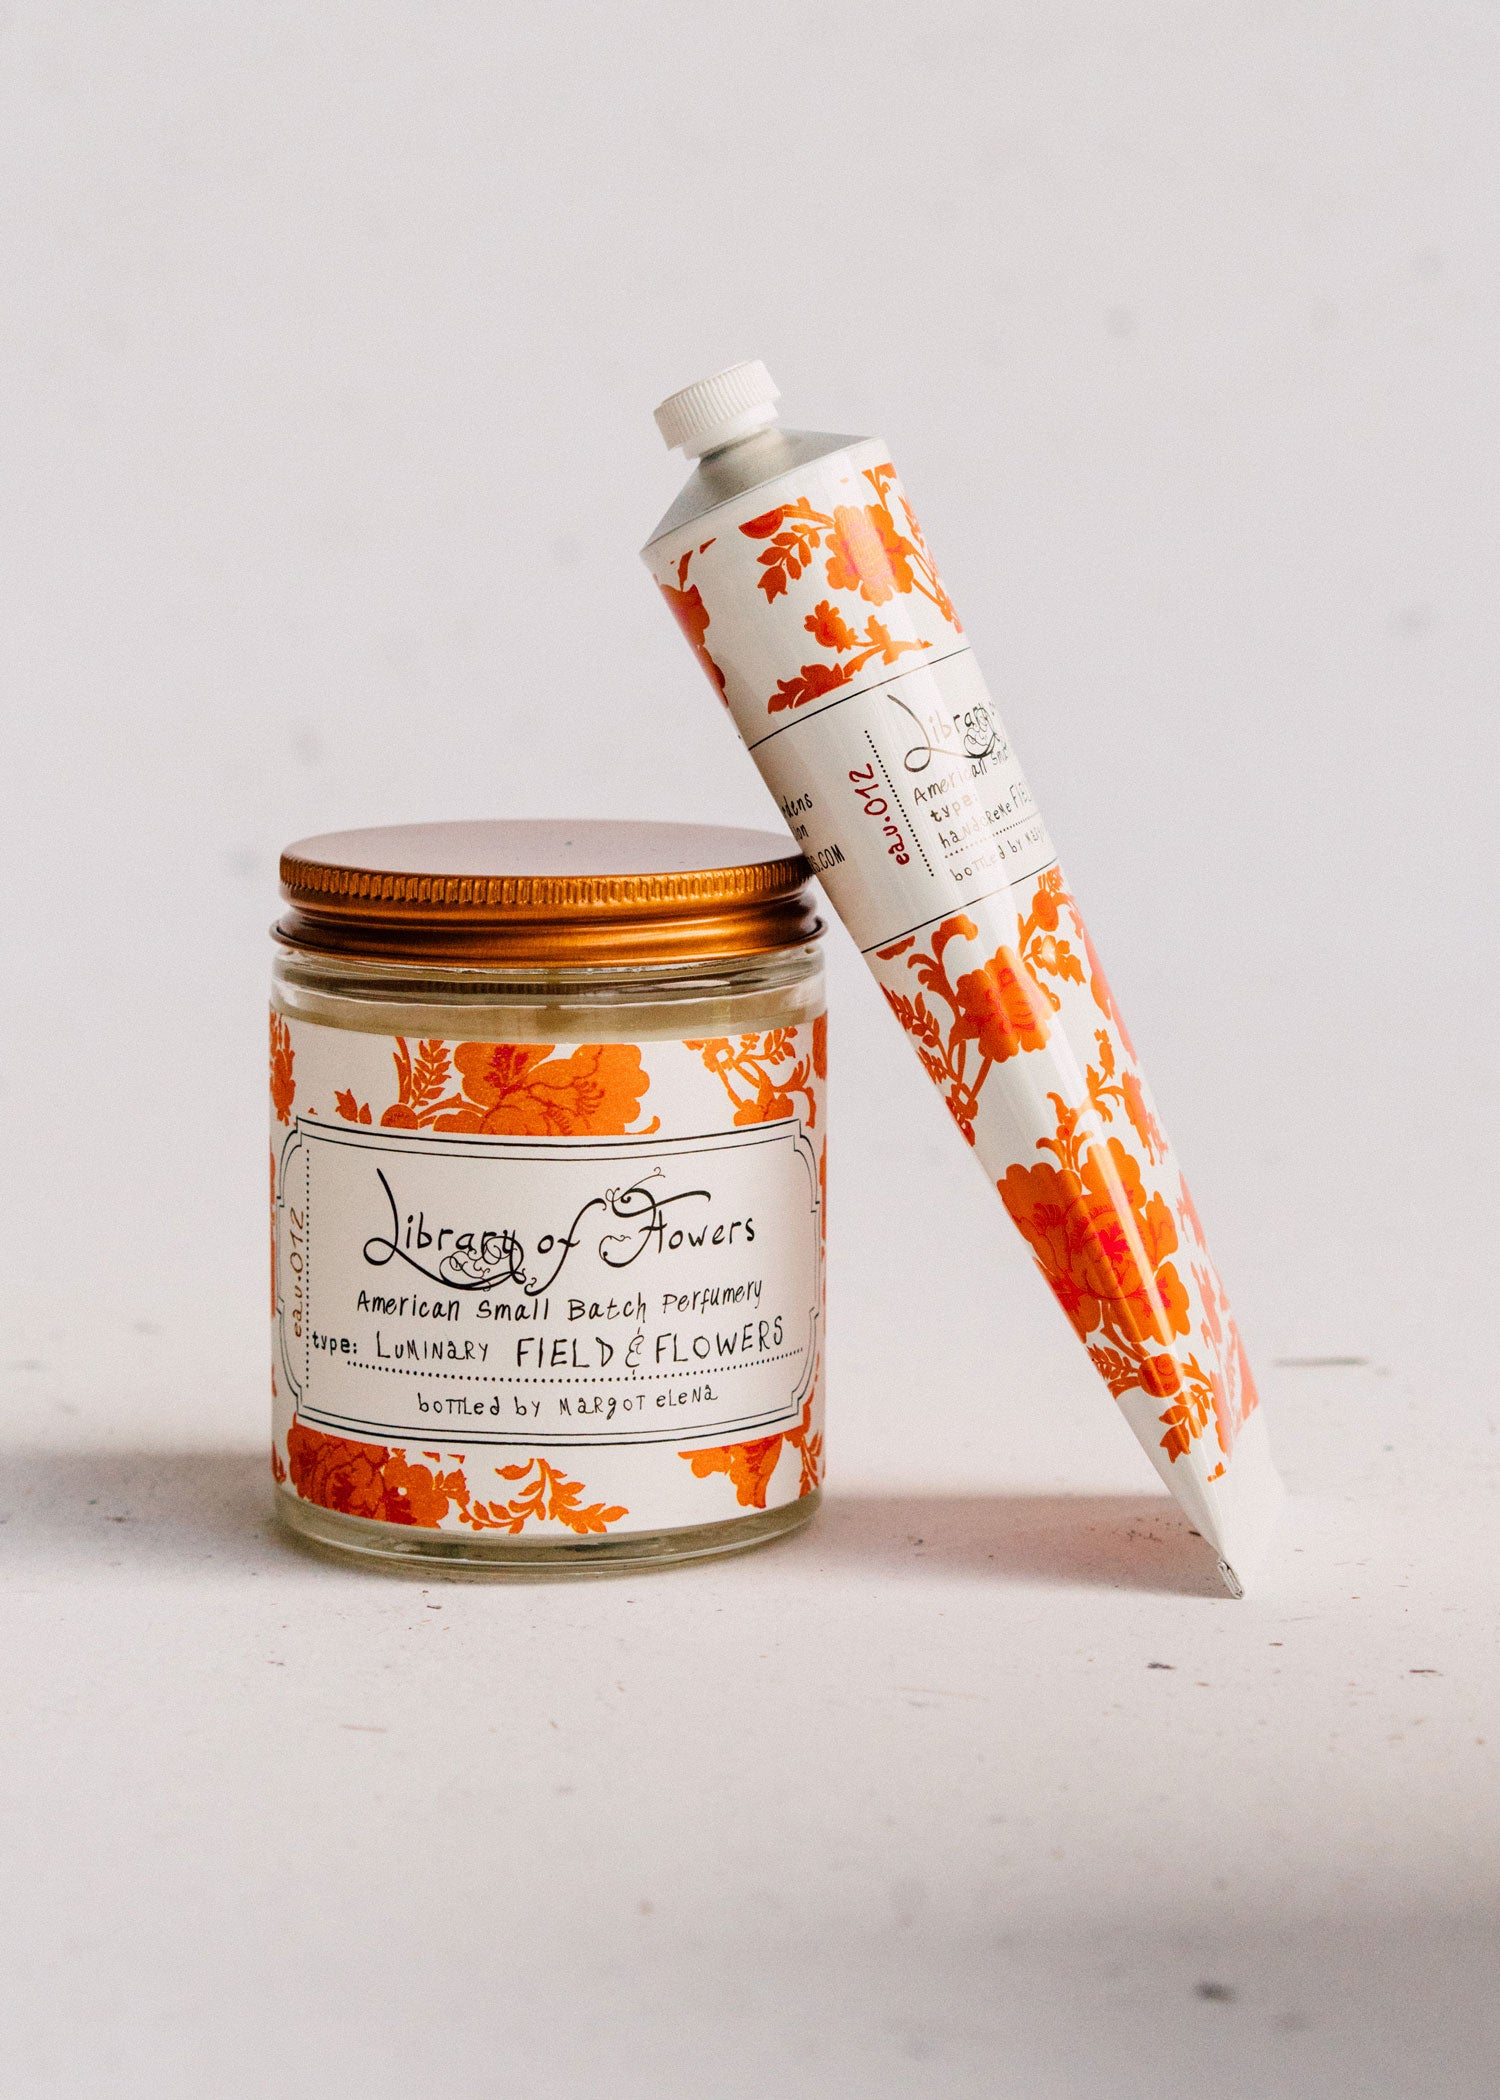 Field & Flowers Duo | Hand Cream & Candle | Library of Flowers